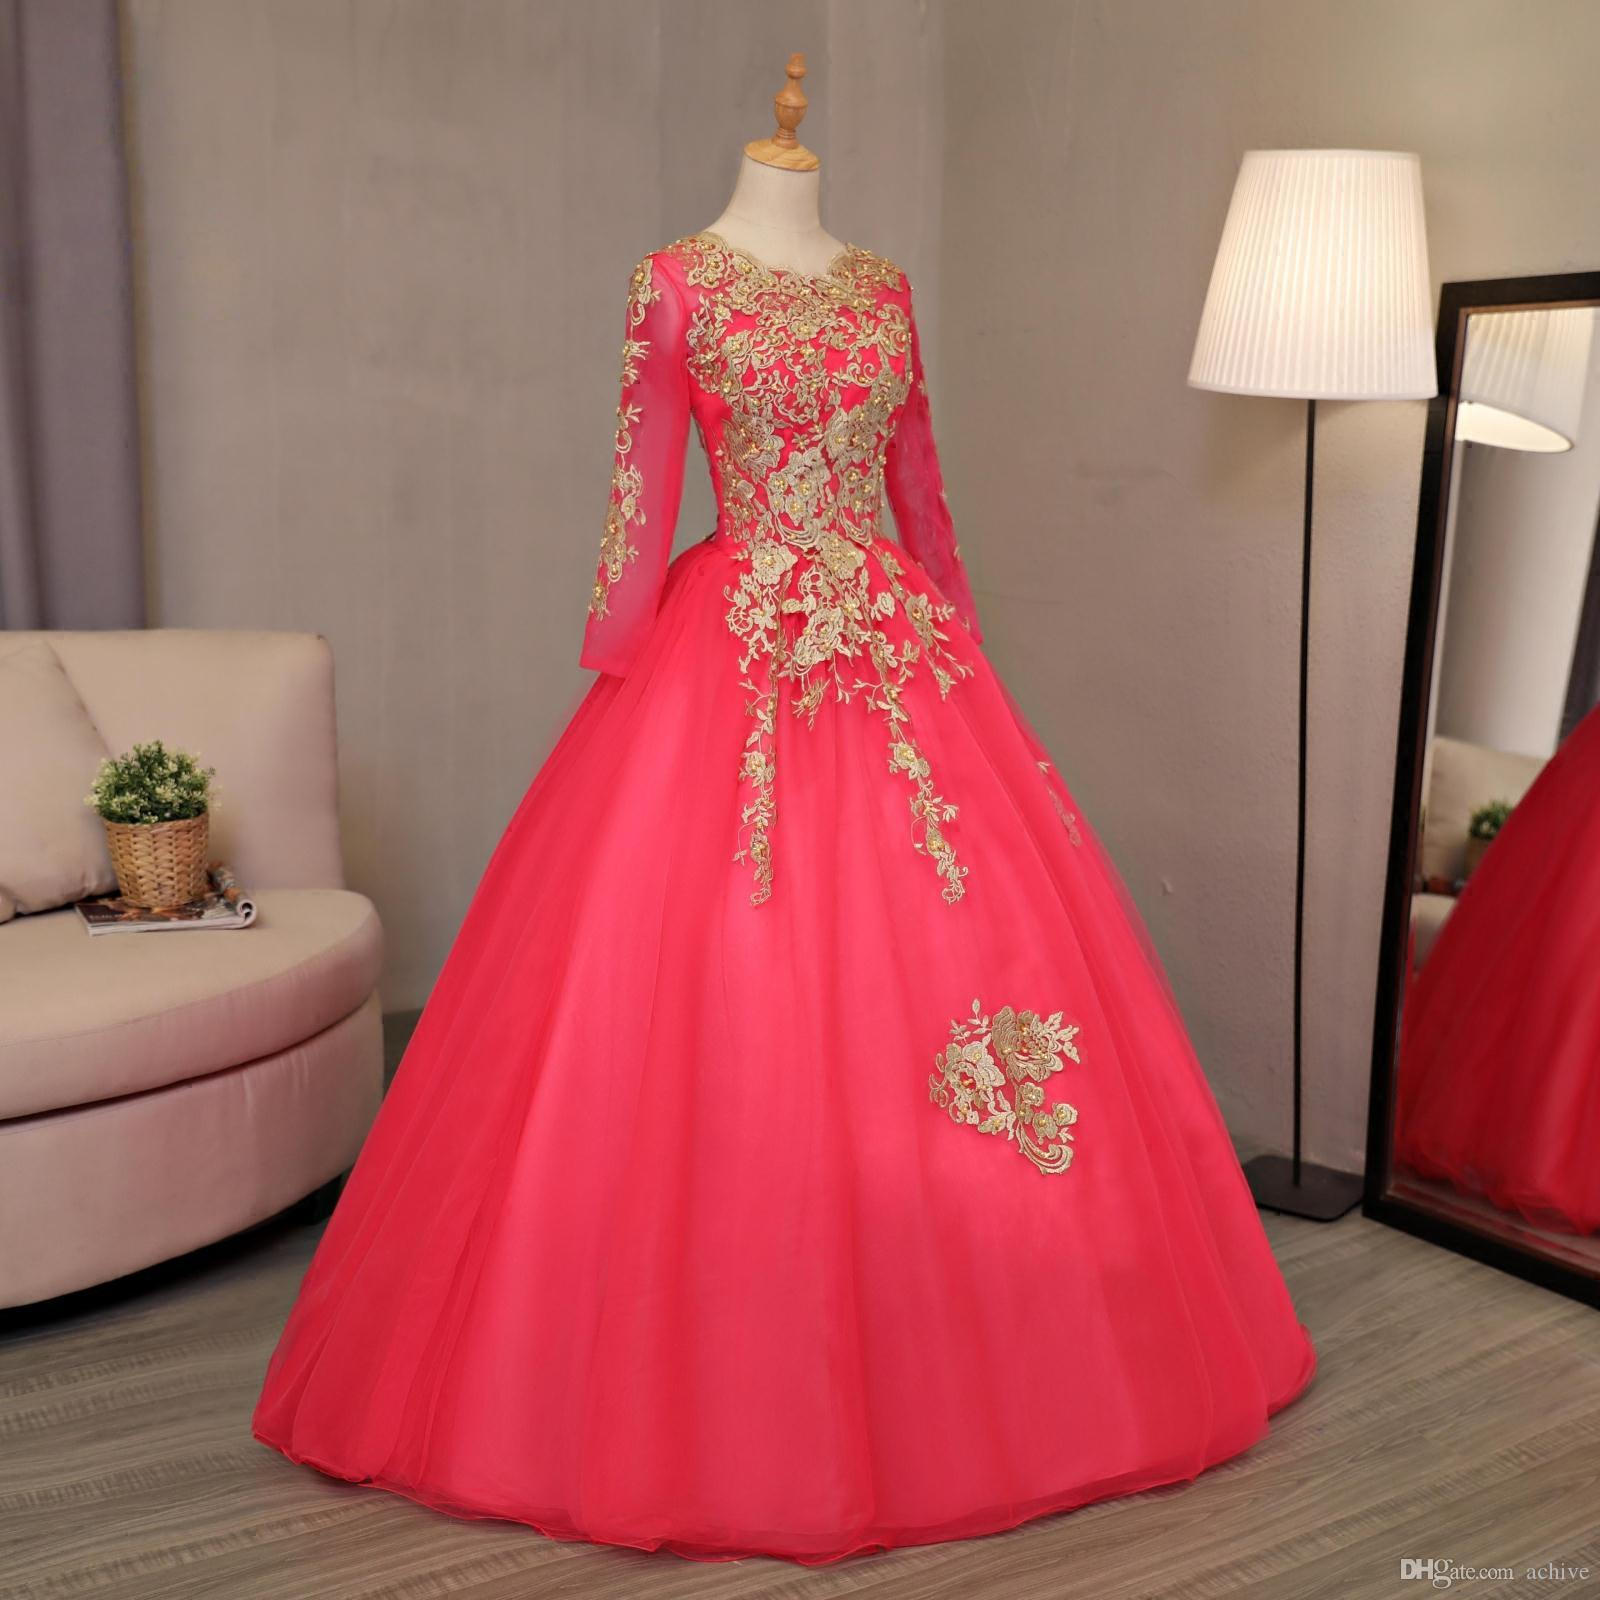 Real Arabic Dubai Ball Gown Prom Dresses Beaded Applique Lace Pearls Long Sleeves Prom Dress Corset Evening Party Gowns 2018 Online Sale